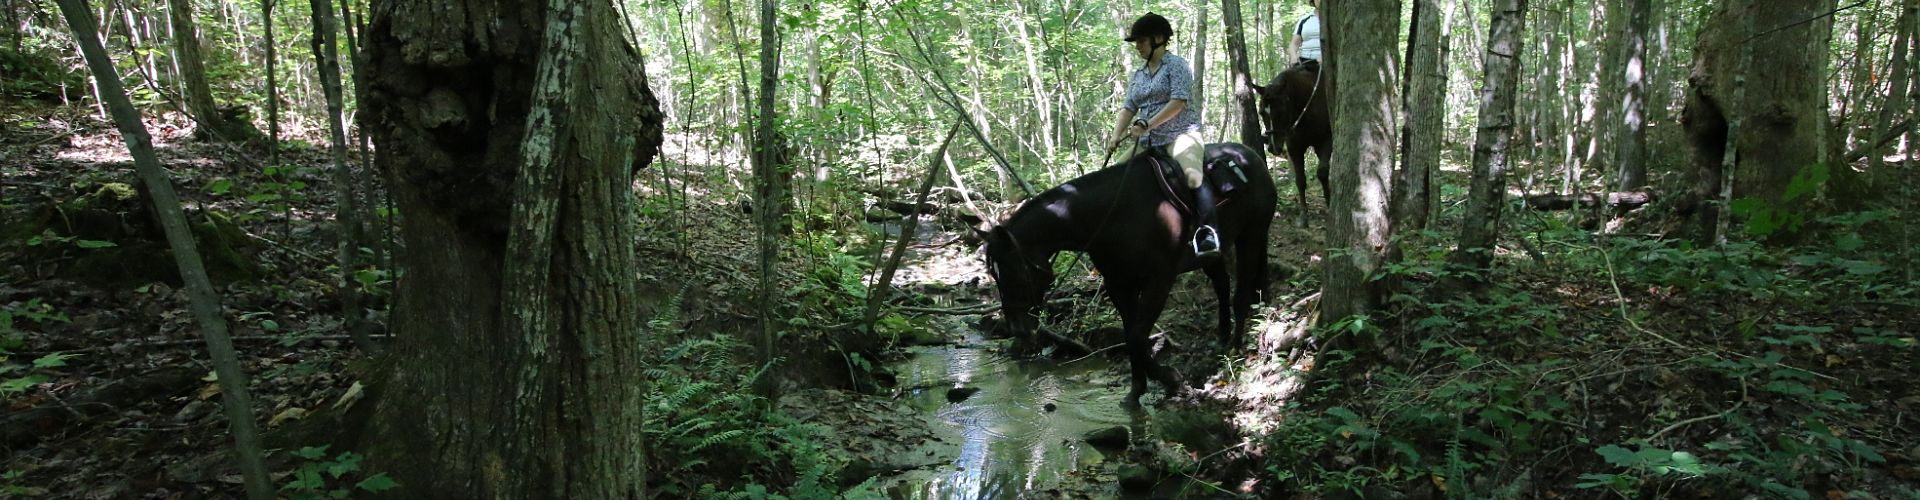 Crossing the creek during the trail ride